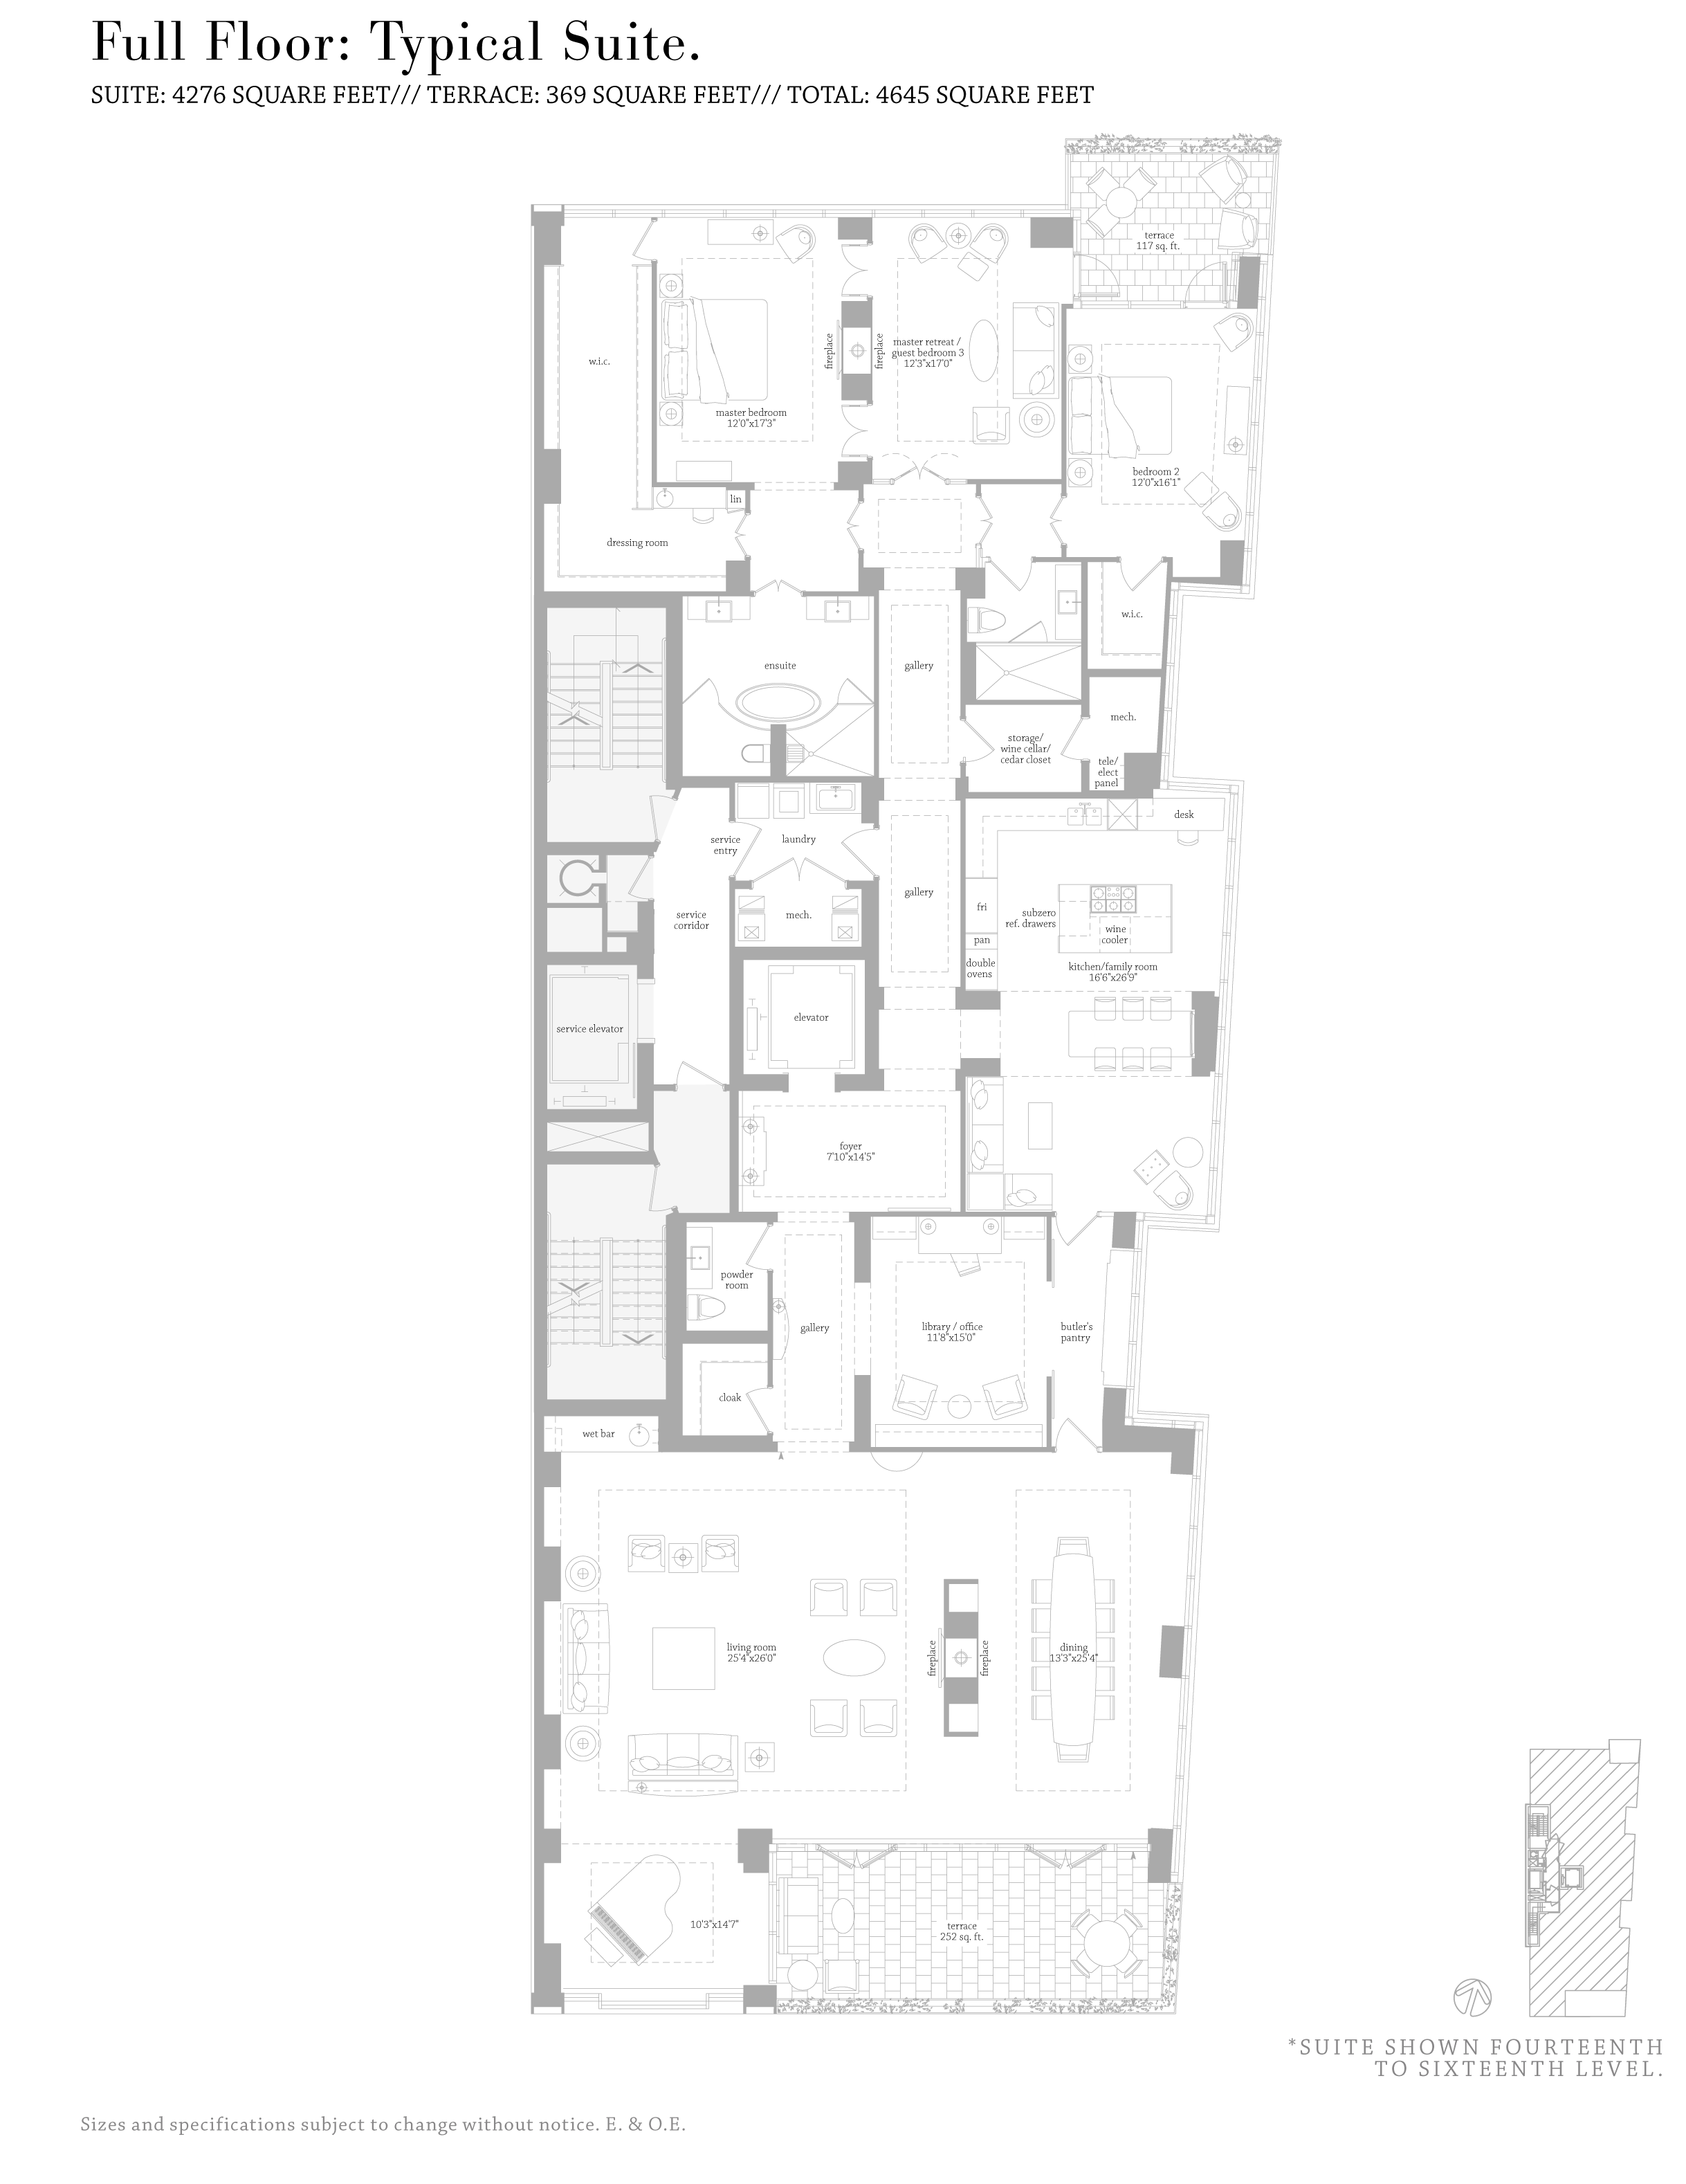 MUSEUM HOUSE FLOORPLANS - FULL FLOOR 4,200 SQ FT